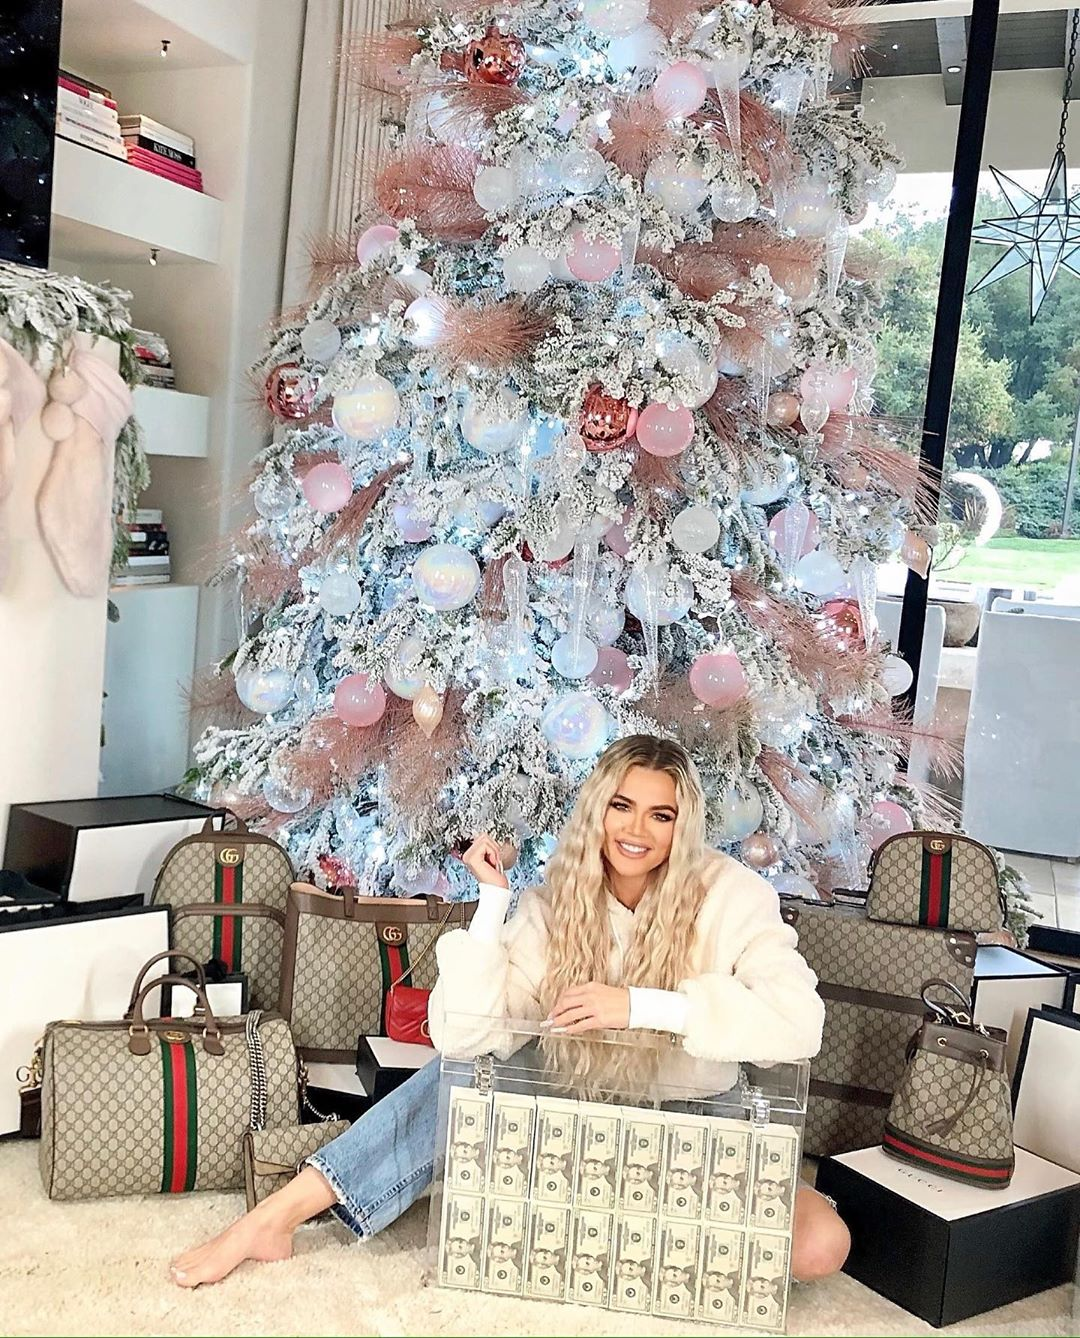 khloe kardashian responds to concerns about family s lavish parties